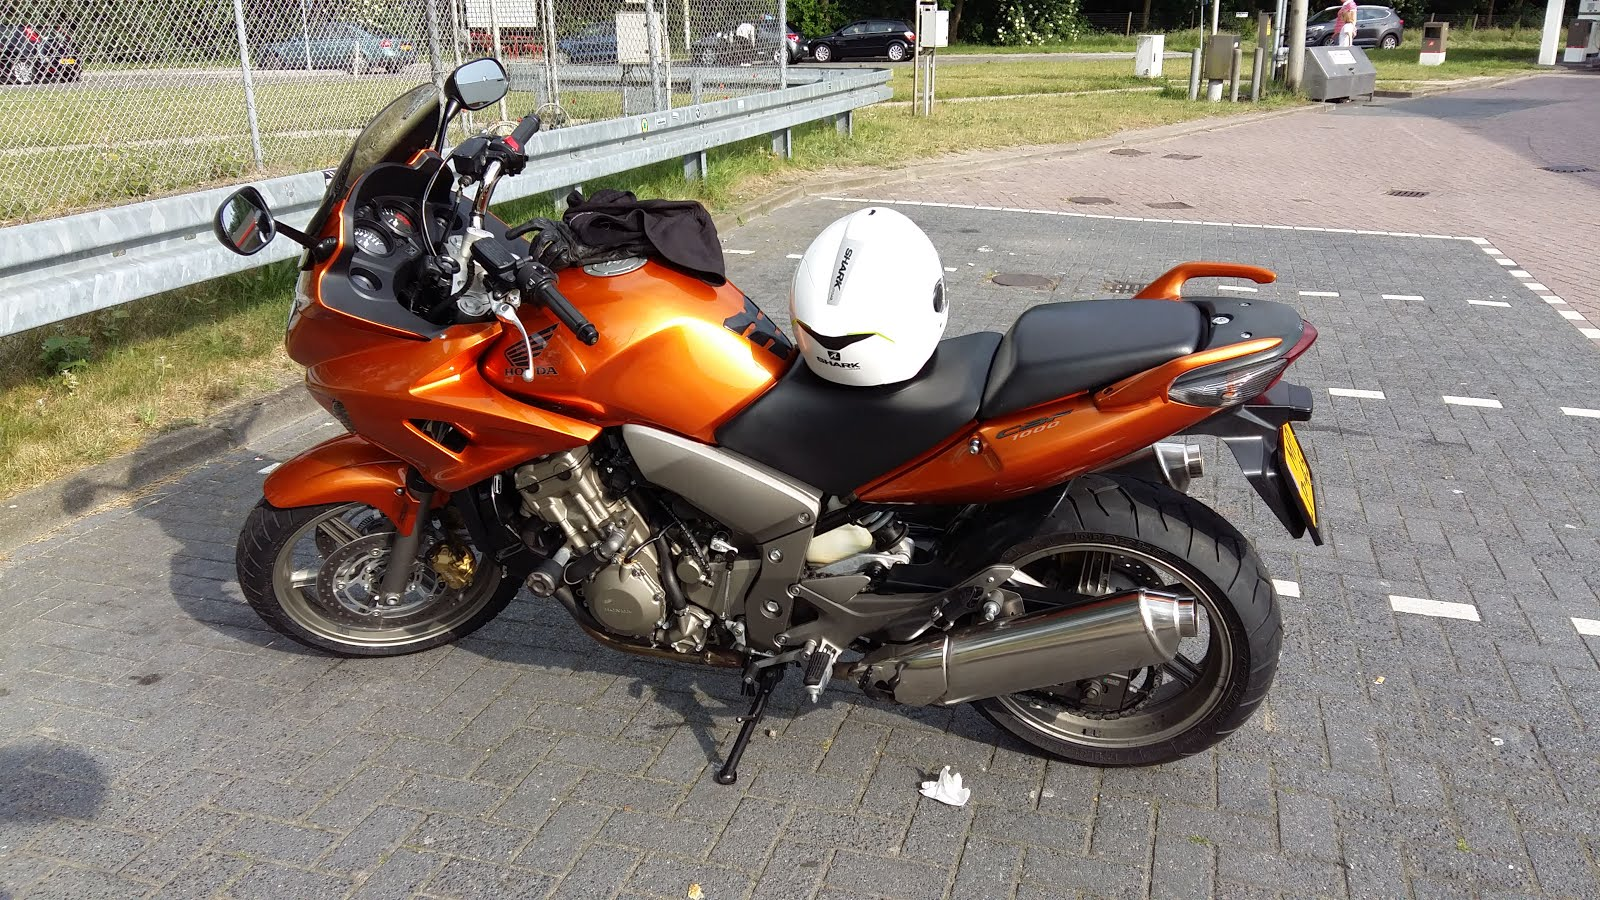 My Honda CBF1000ABS